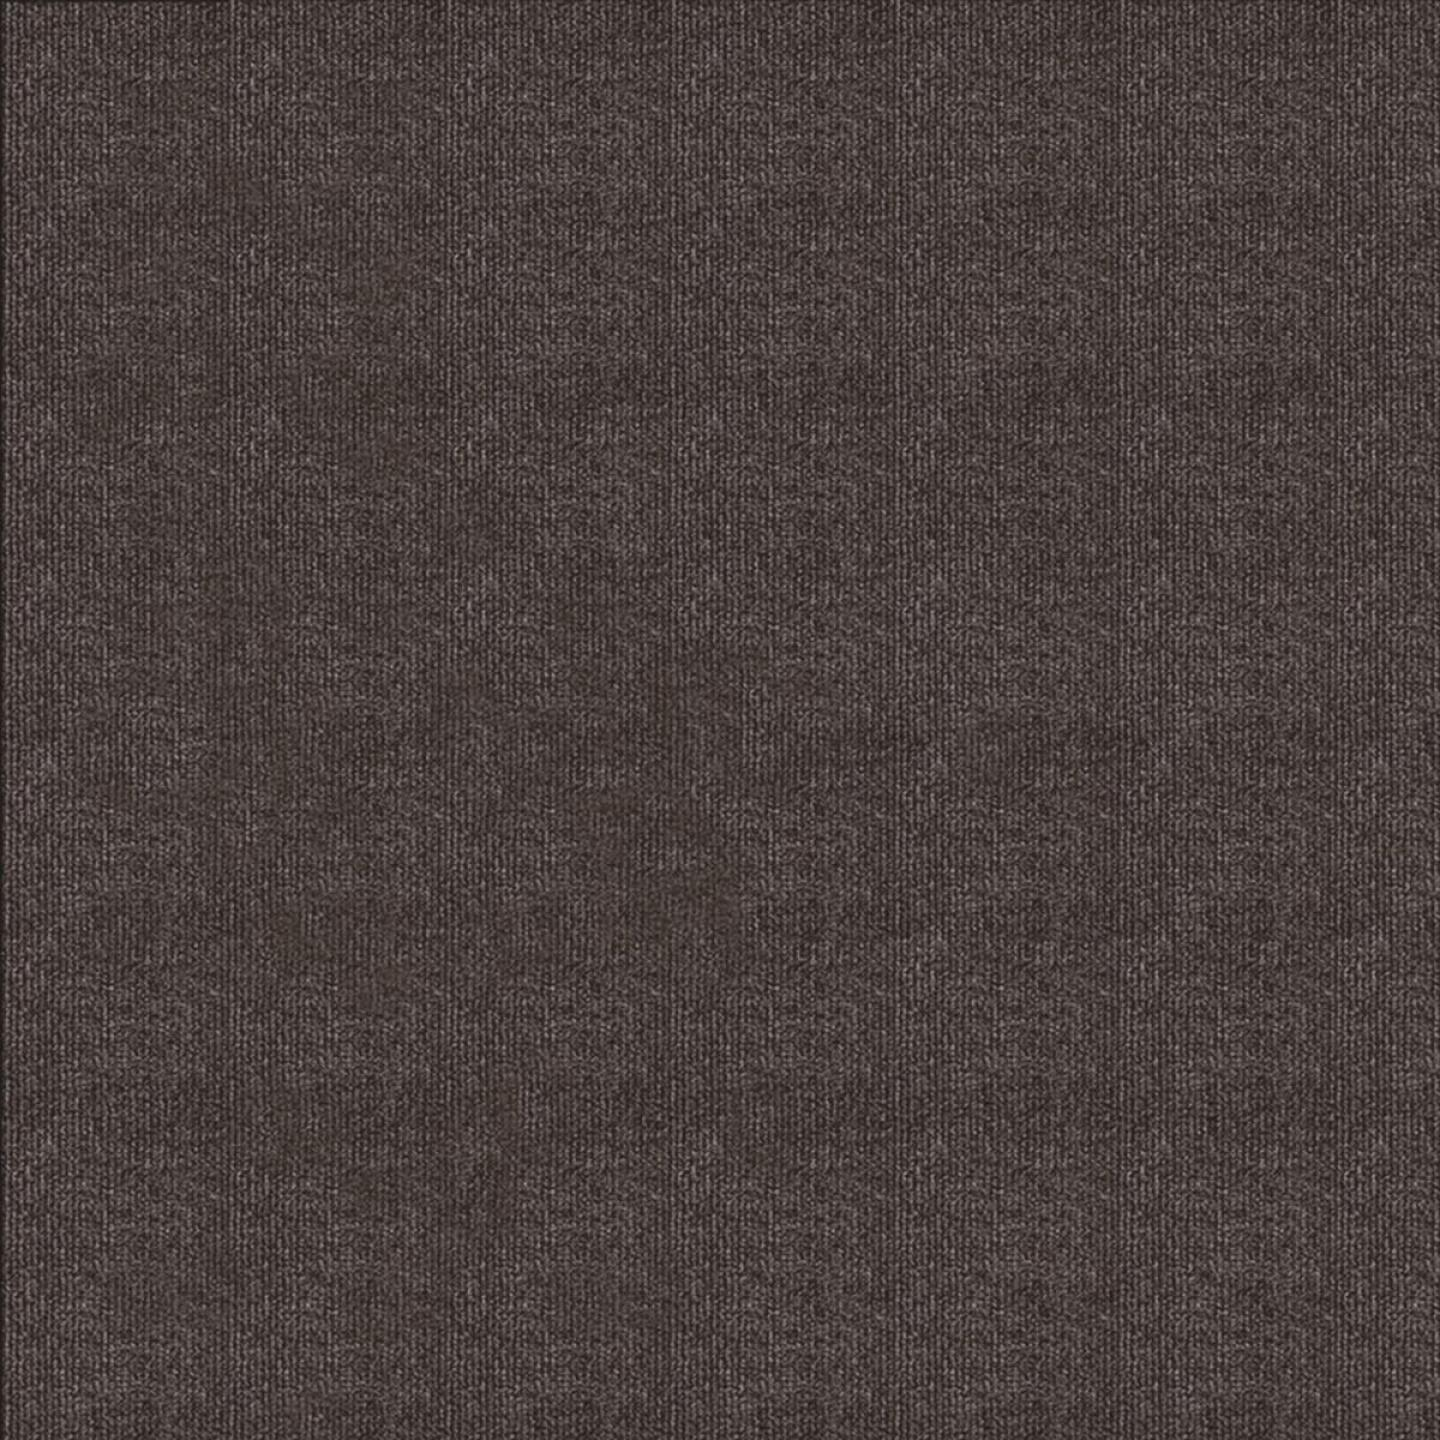 Smart Transformations 24 In. x 24 In. Espresso Mosaic Carpet Tile (15-Pack) Image 7